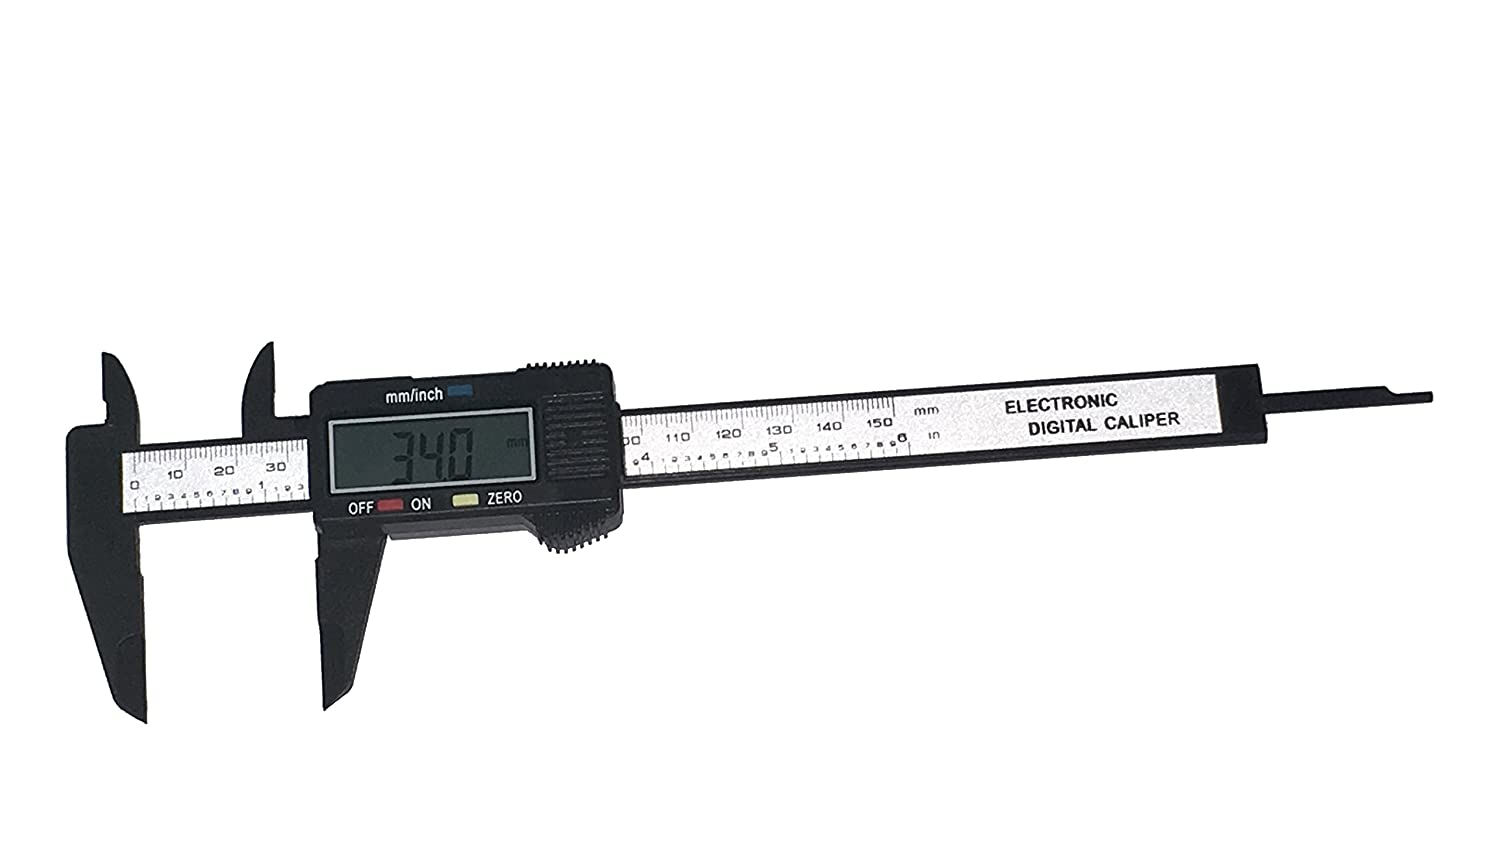 6 inch 150mm Electronic Digital Caliper Ruler Gauge Carbon Fiber Composite Vernier Micrometer with LCD Display OEM